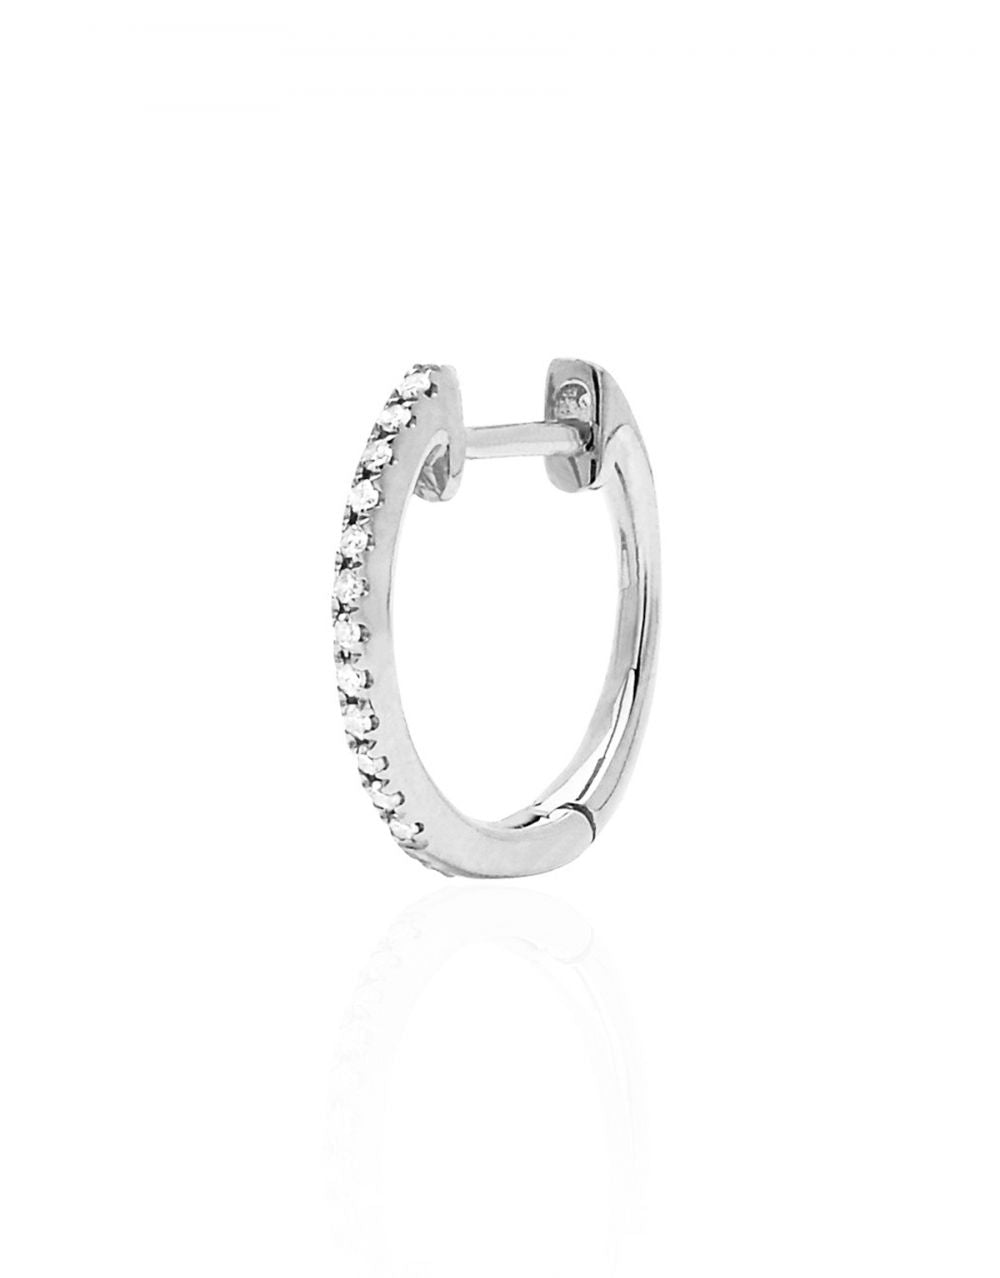 Mini Diamond Hoop Piercing<br /><i><small>14K White Gold with White Diamonds</small></i><br />